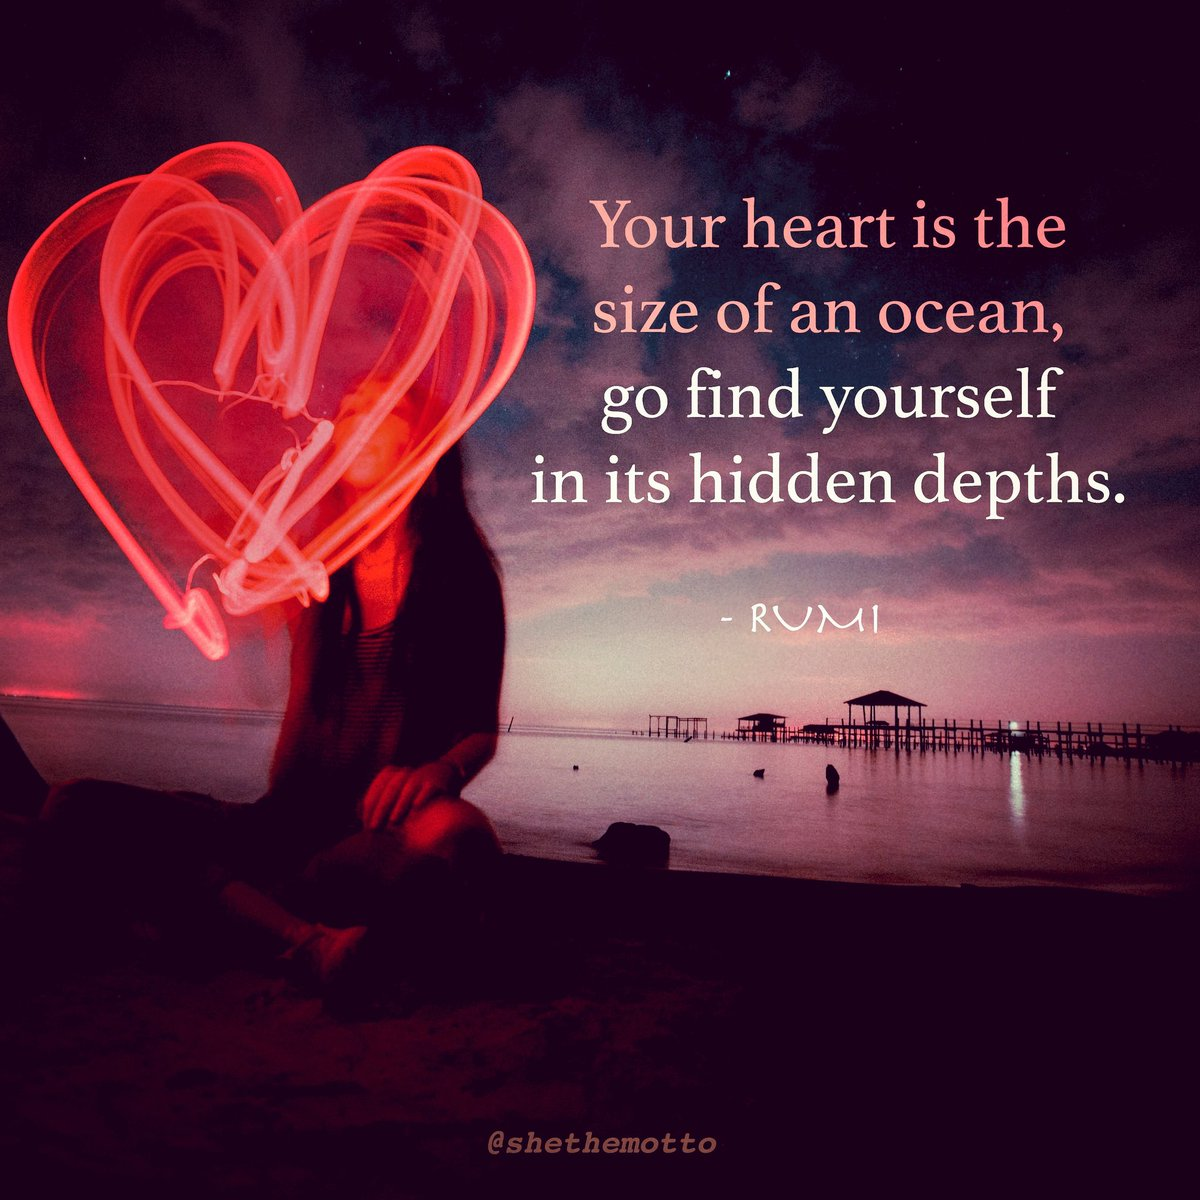 Knowing yourself is the beginning of all wisdom ❤️  #BlessedWithWisdom #Rumi #Truth #quotes #affirmation #SundayMorning #findyourself #dontgiveup #SecretToBoostConfidence #HappeningNow #WiseWords #Inspiration #shethemotto #Hearties https://t.co/5o1et7gtmU